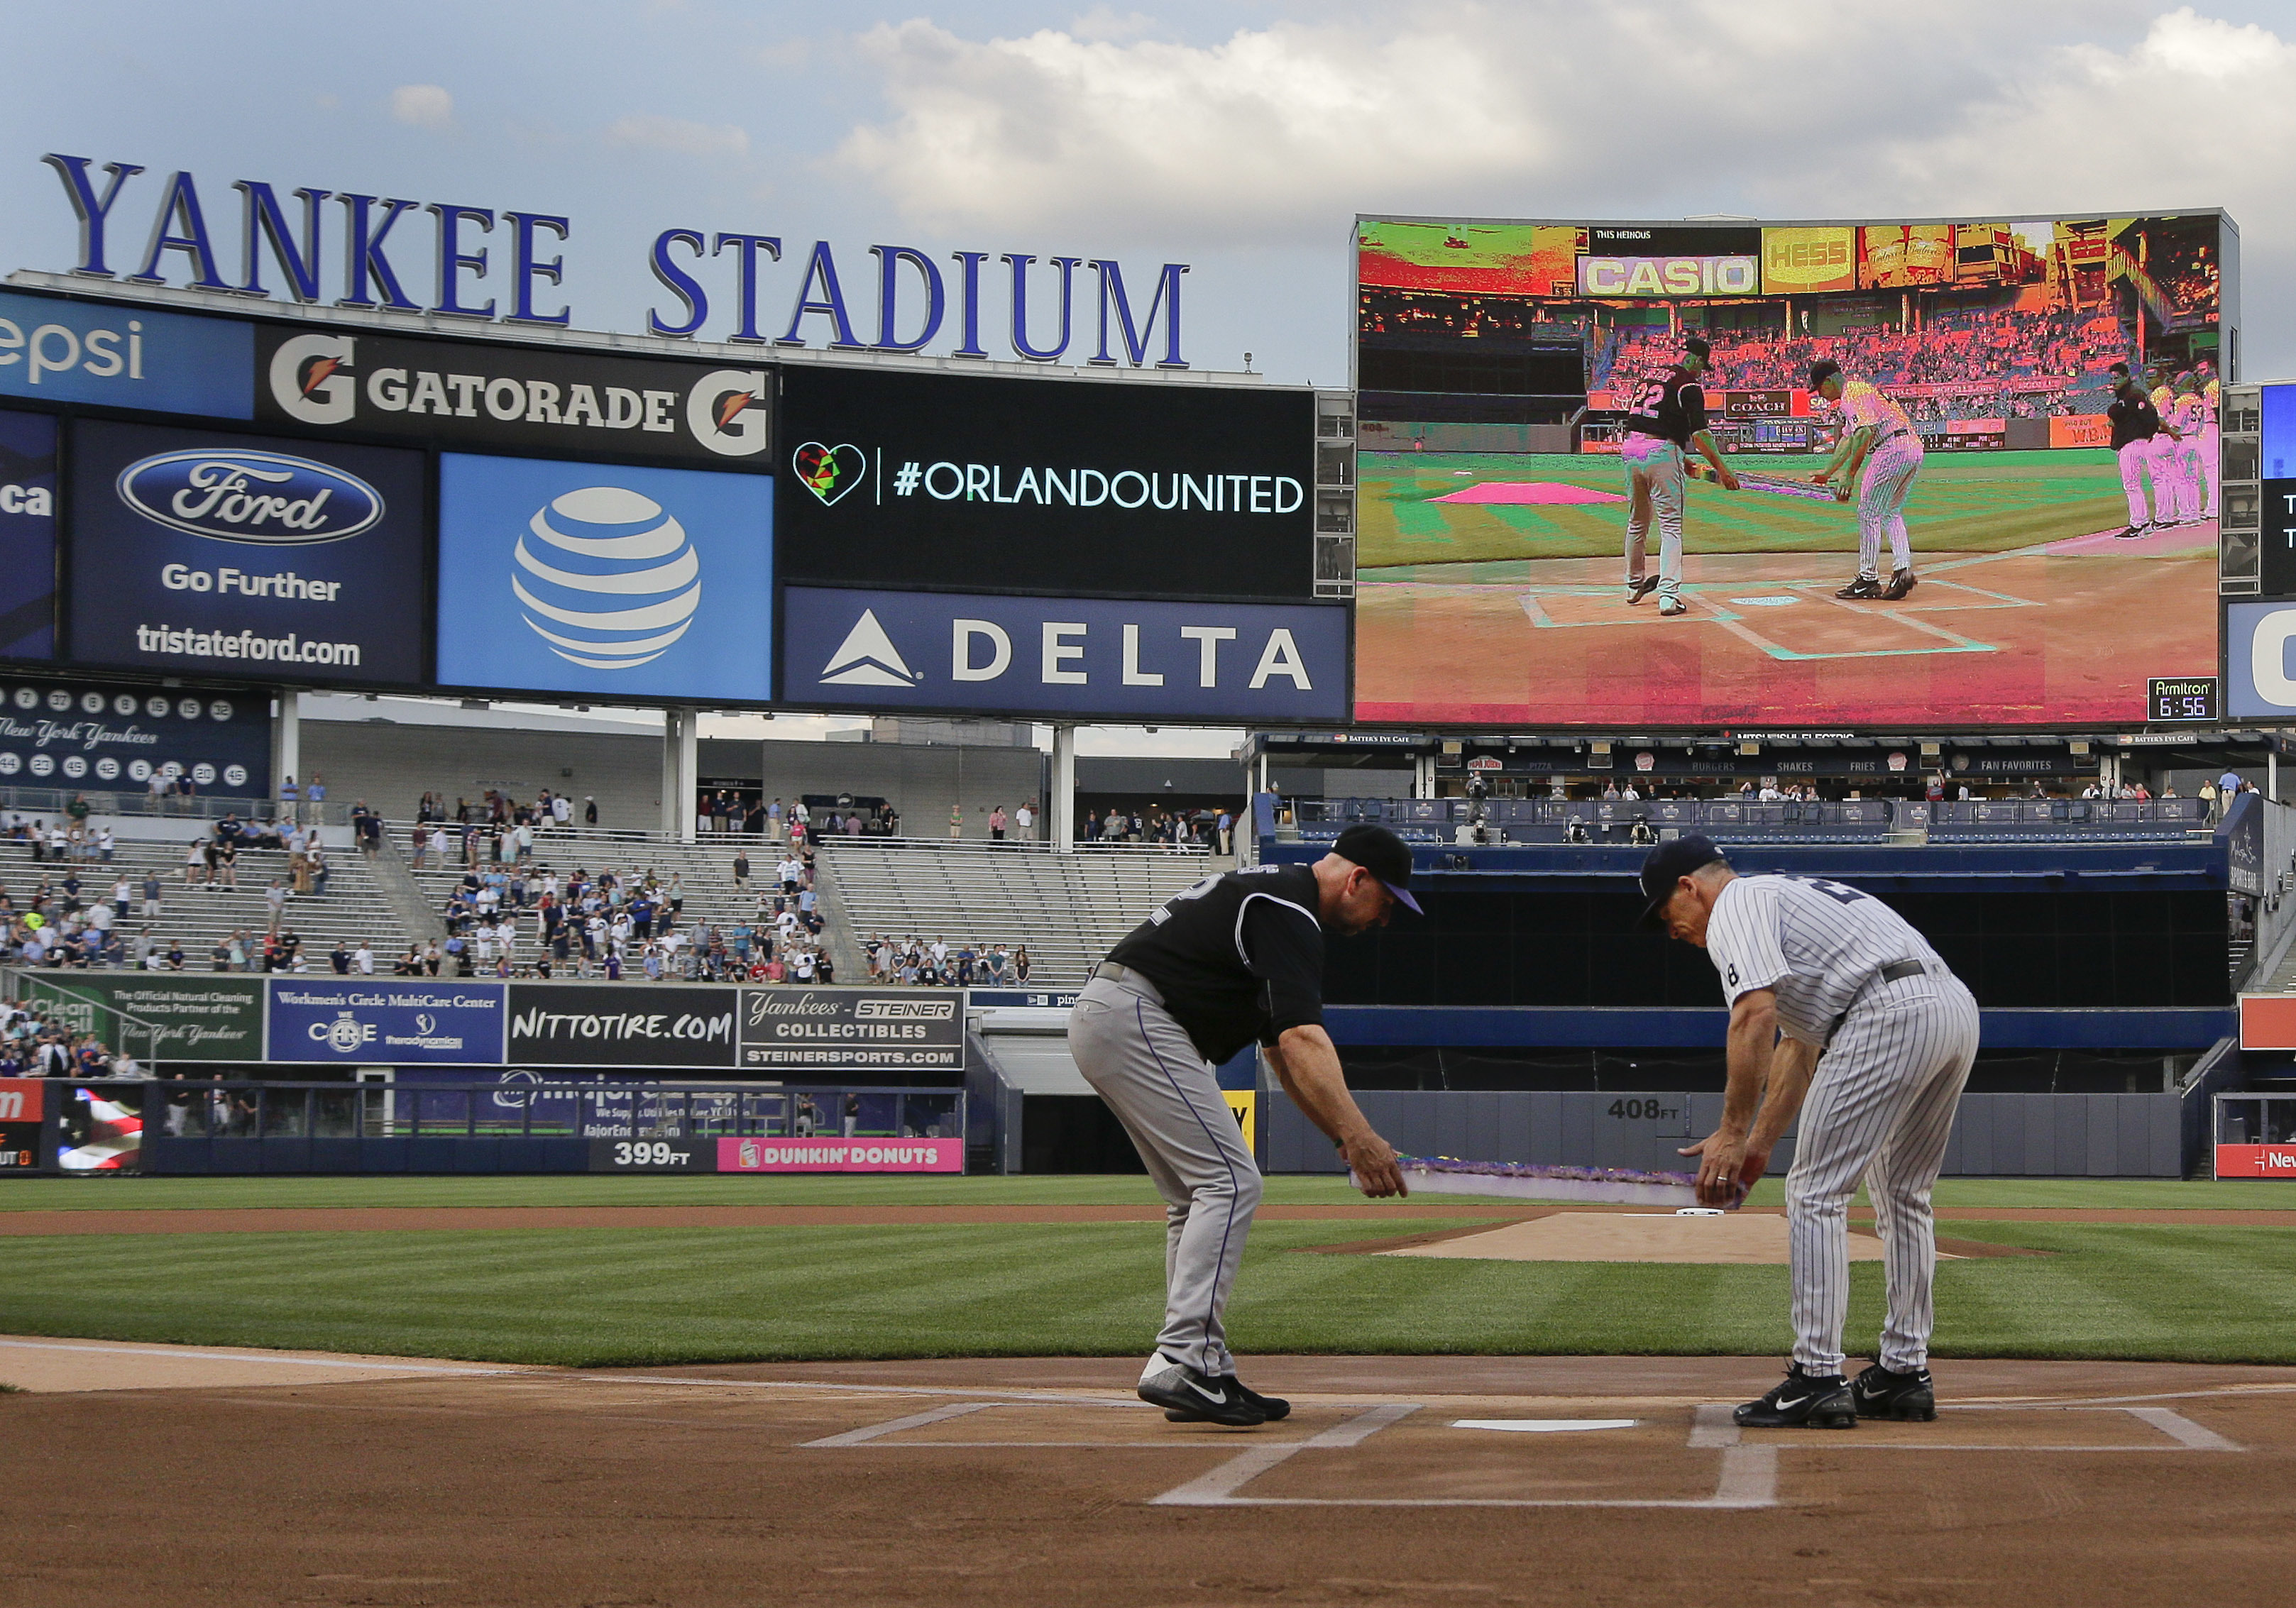 Colorado Rockies manager Walt Weiss, left, and New York Yankees manager Joe Girardi lay a rainbow-colored wreath across home plate during a ceremony remembering the victims of the Orlando shootings, before a baseball game Tuesday, June 21, 2016, in New Yo